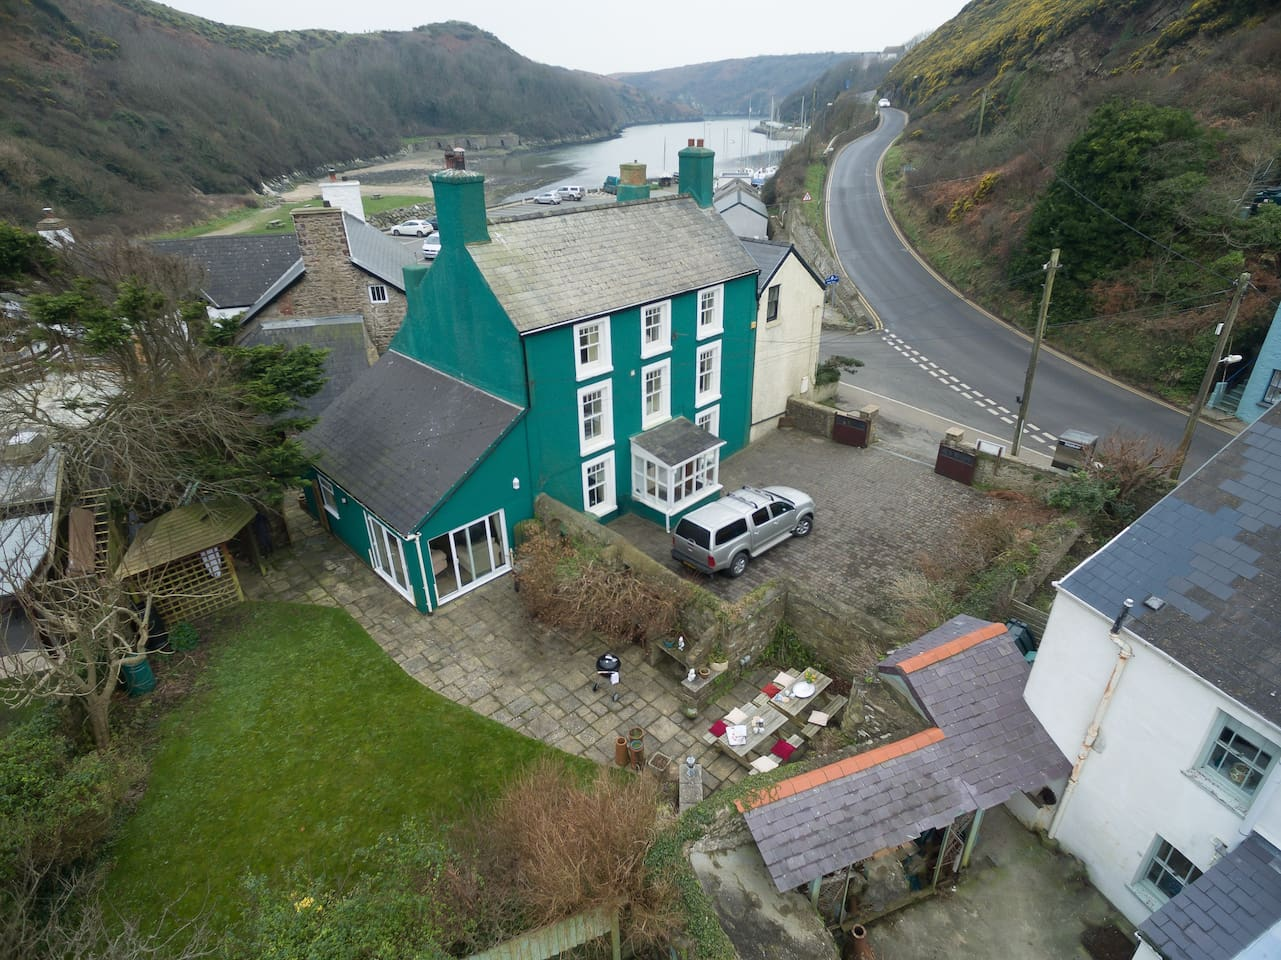 Llys Aber from above